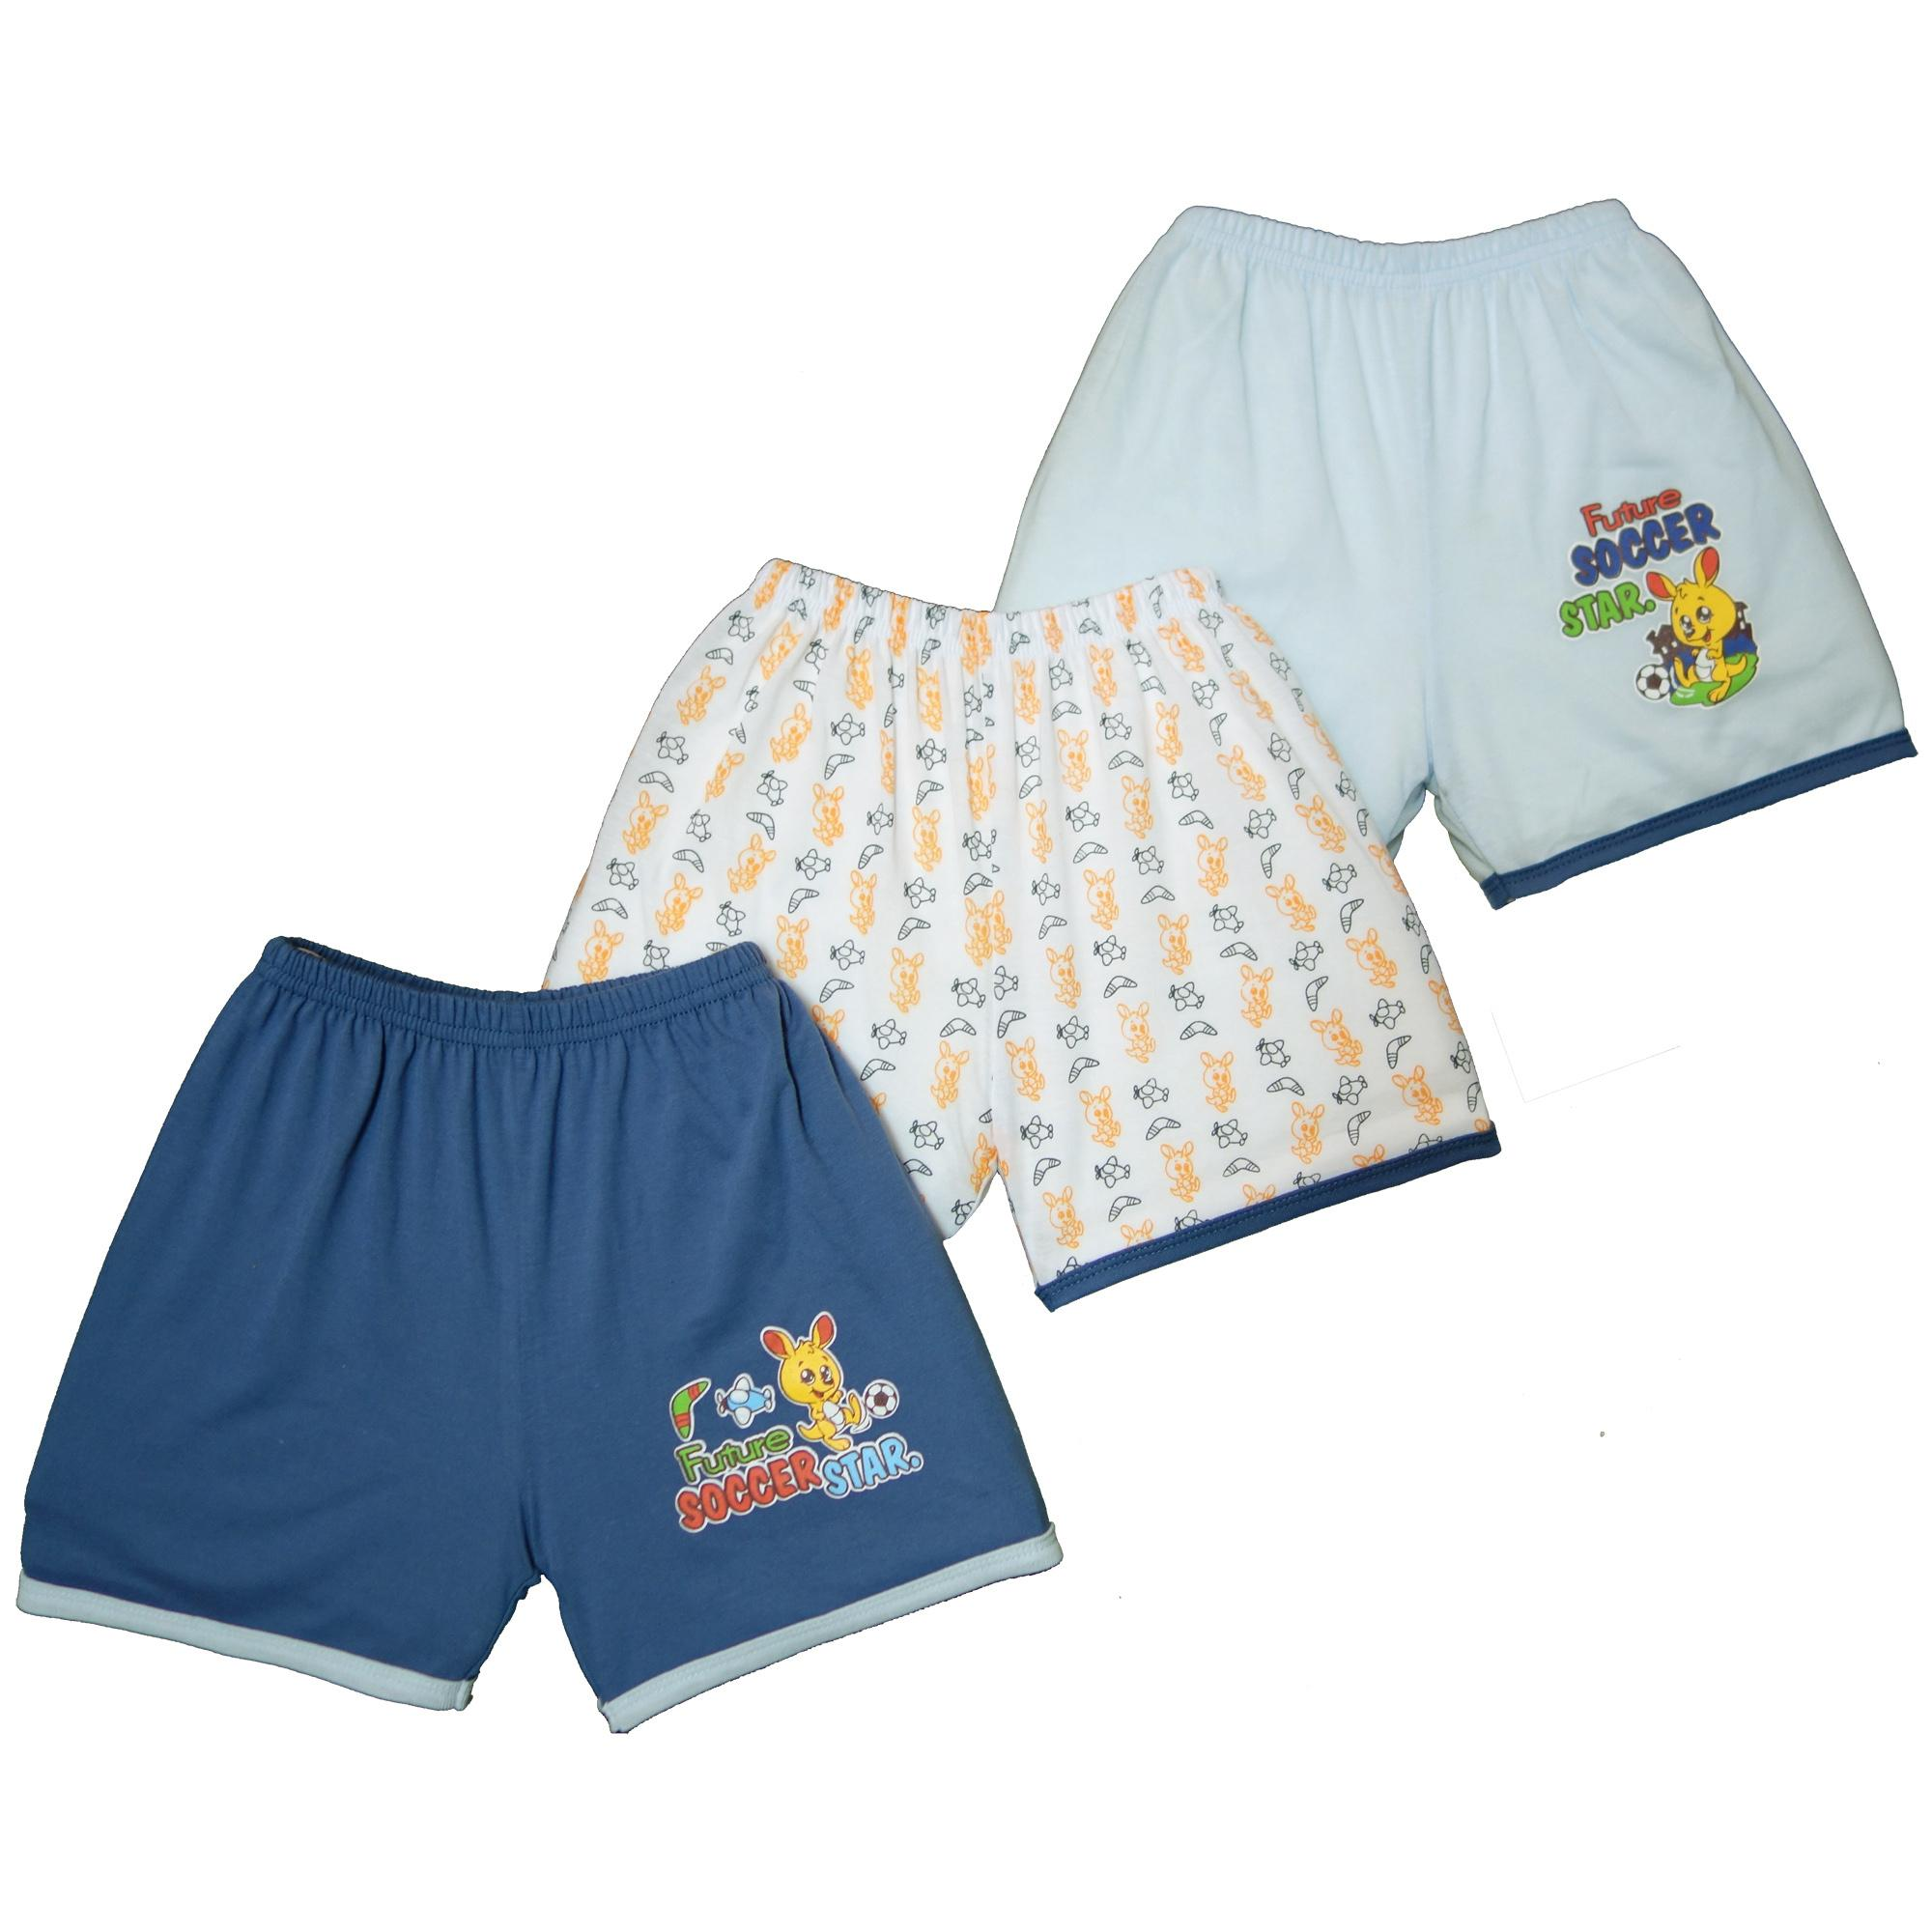 38254dd3eb Boys Shorts for sale - Baby Shorts for Boys online brands, prices ...